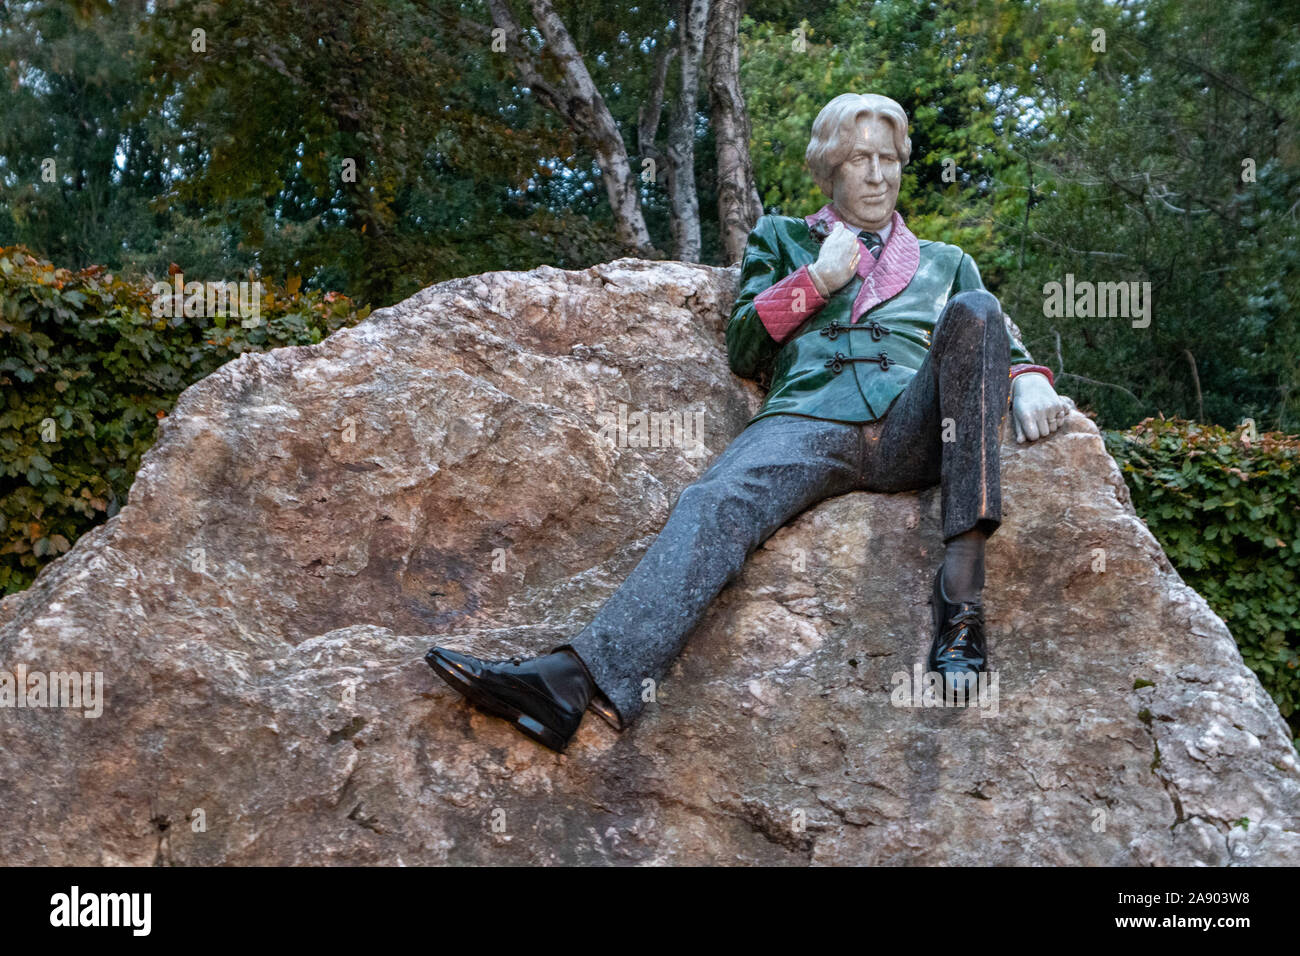 The Oscar Wilde Memorial Sculpture by Danny Osborne in Merrion Square Dublin Ireland Stock Photo